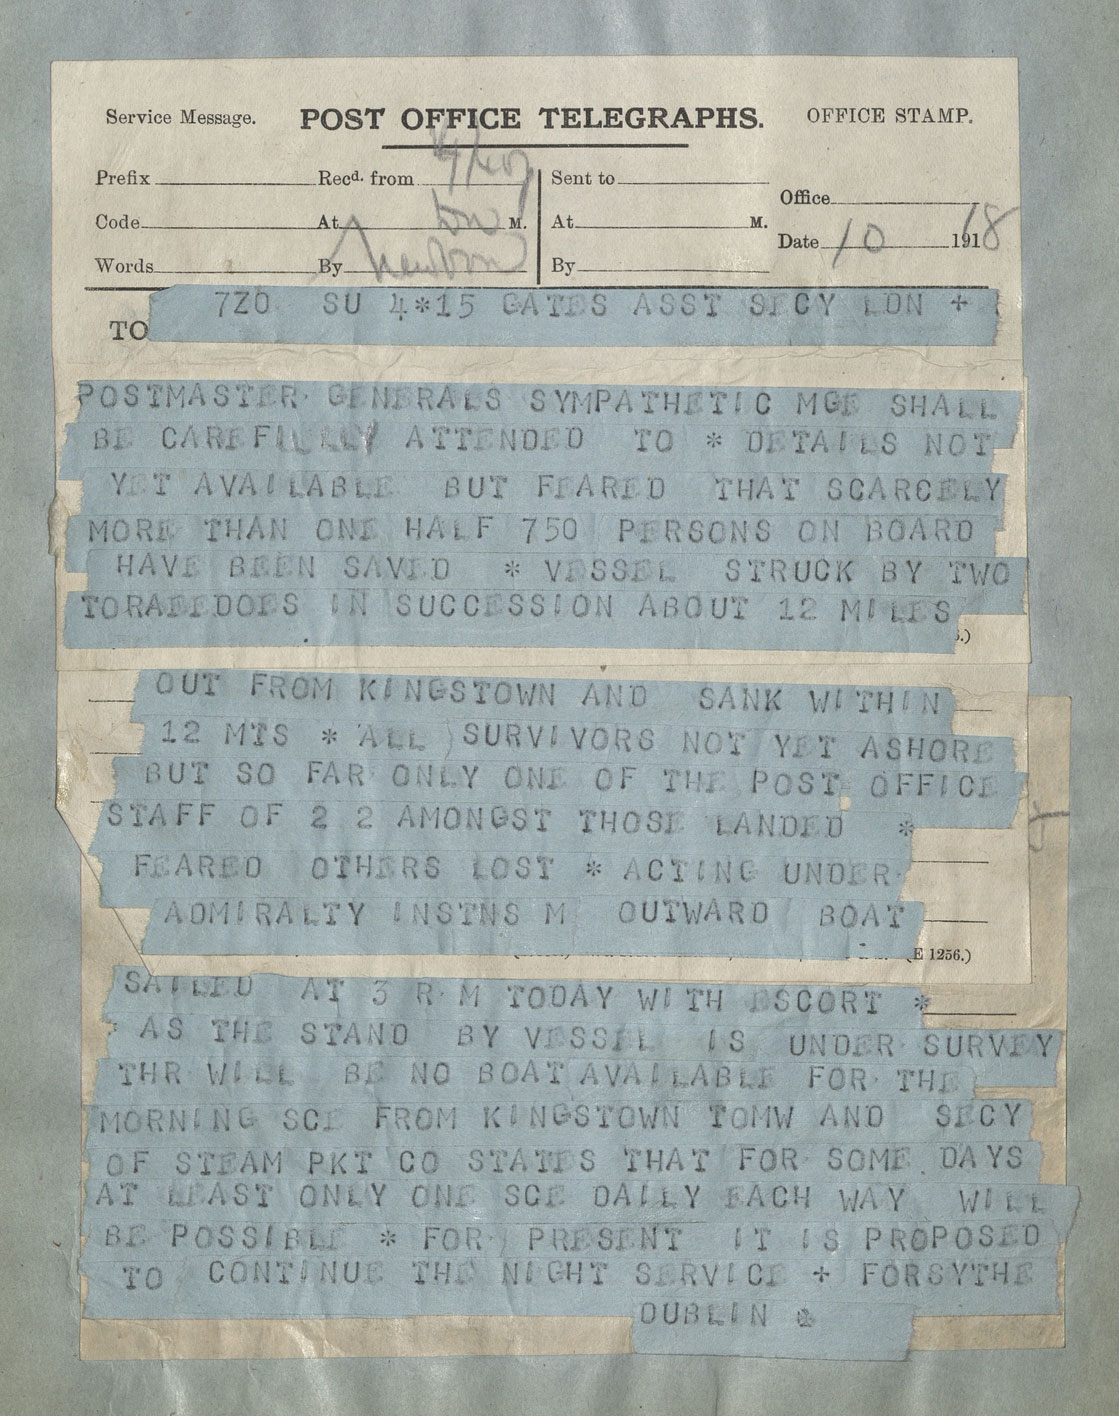 Telegram talking of the lose of life with the sinking of RMS Leinster